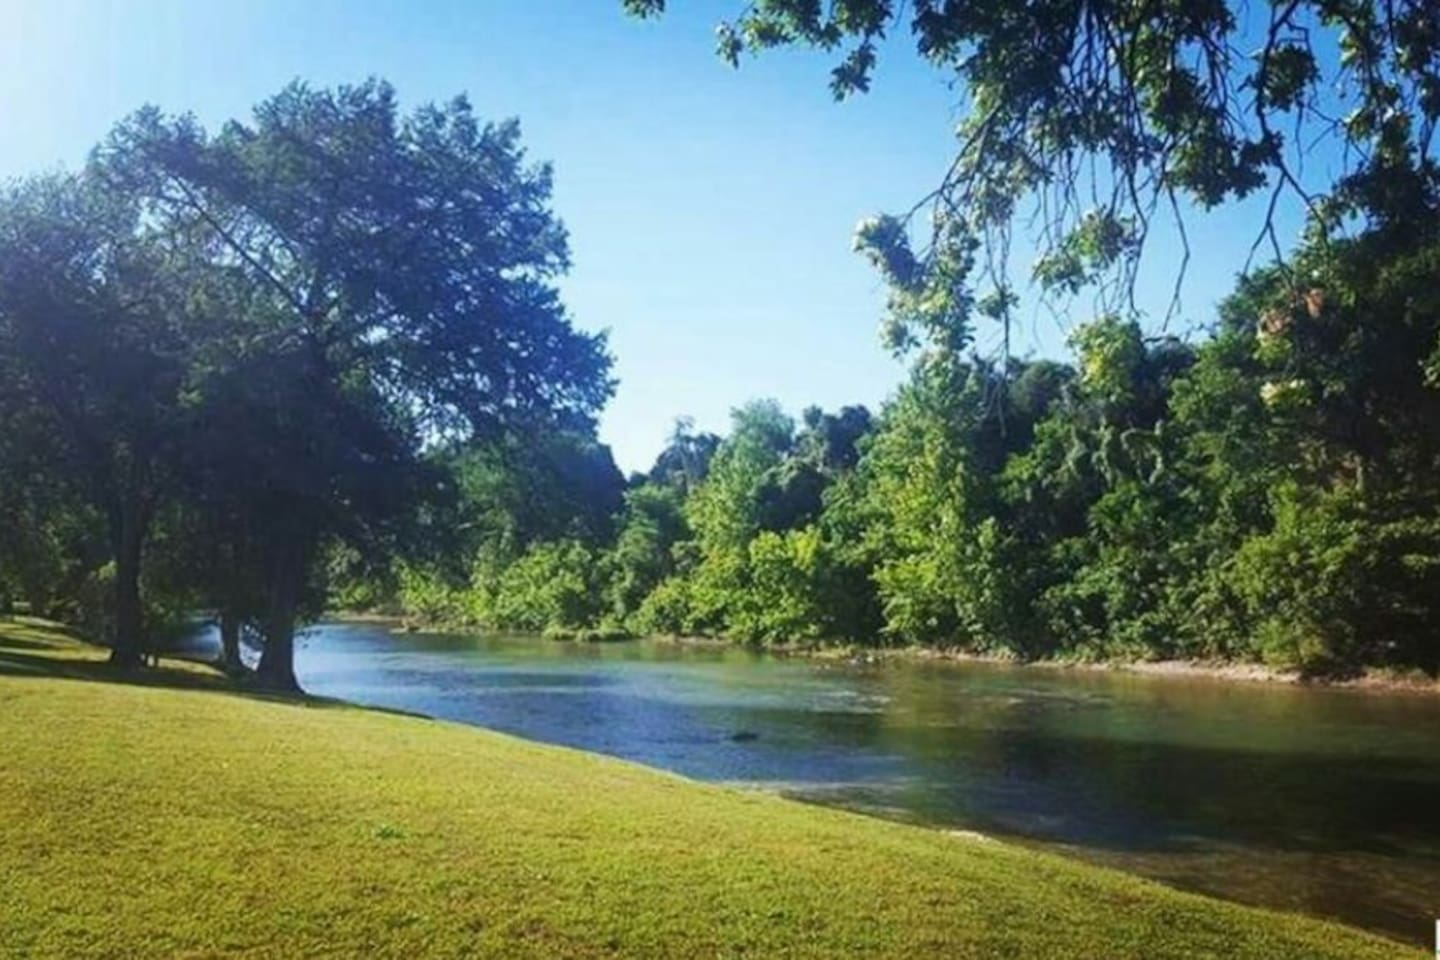 The Guadalupe river 1/4 mile away in neighborhood park.  Popular exit for long floats from Gruene.